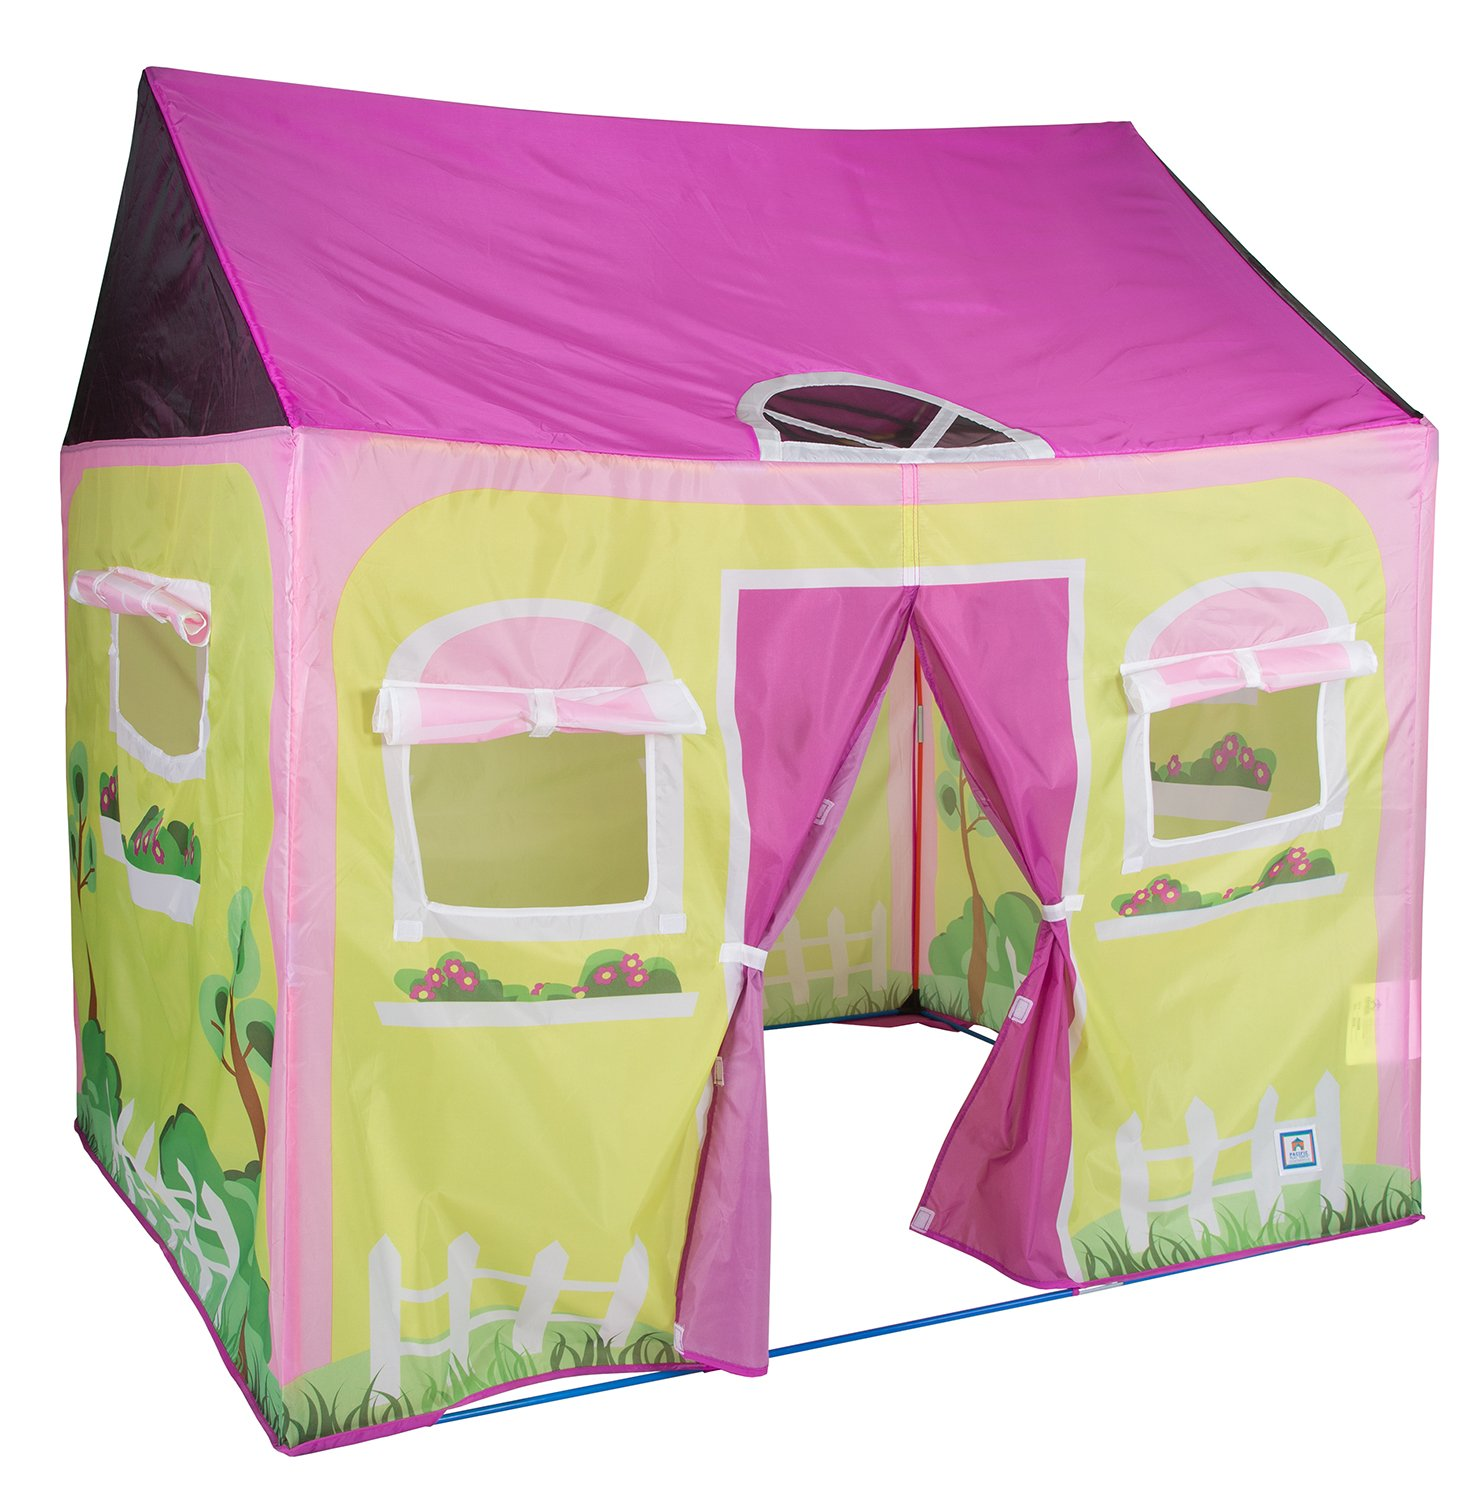 Pacific Play Tents 60600 Cottage House Play Tent - 58'' x 48'' x 58''